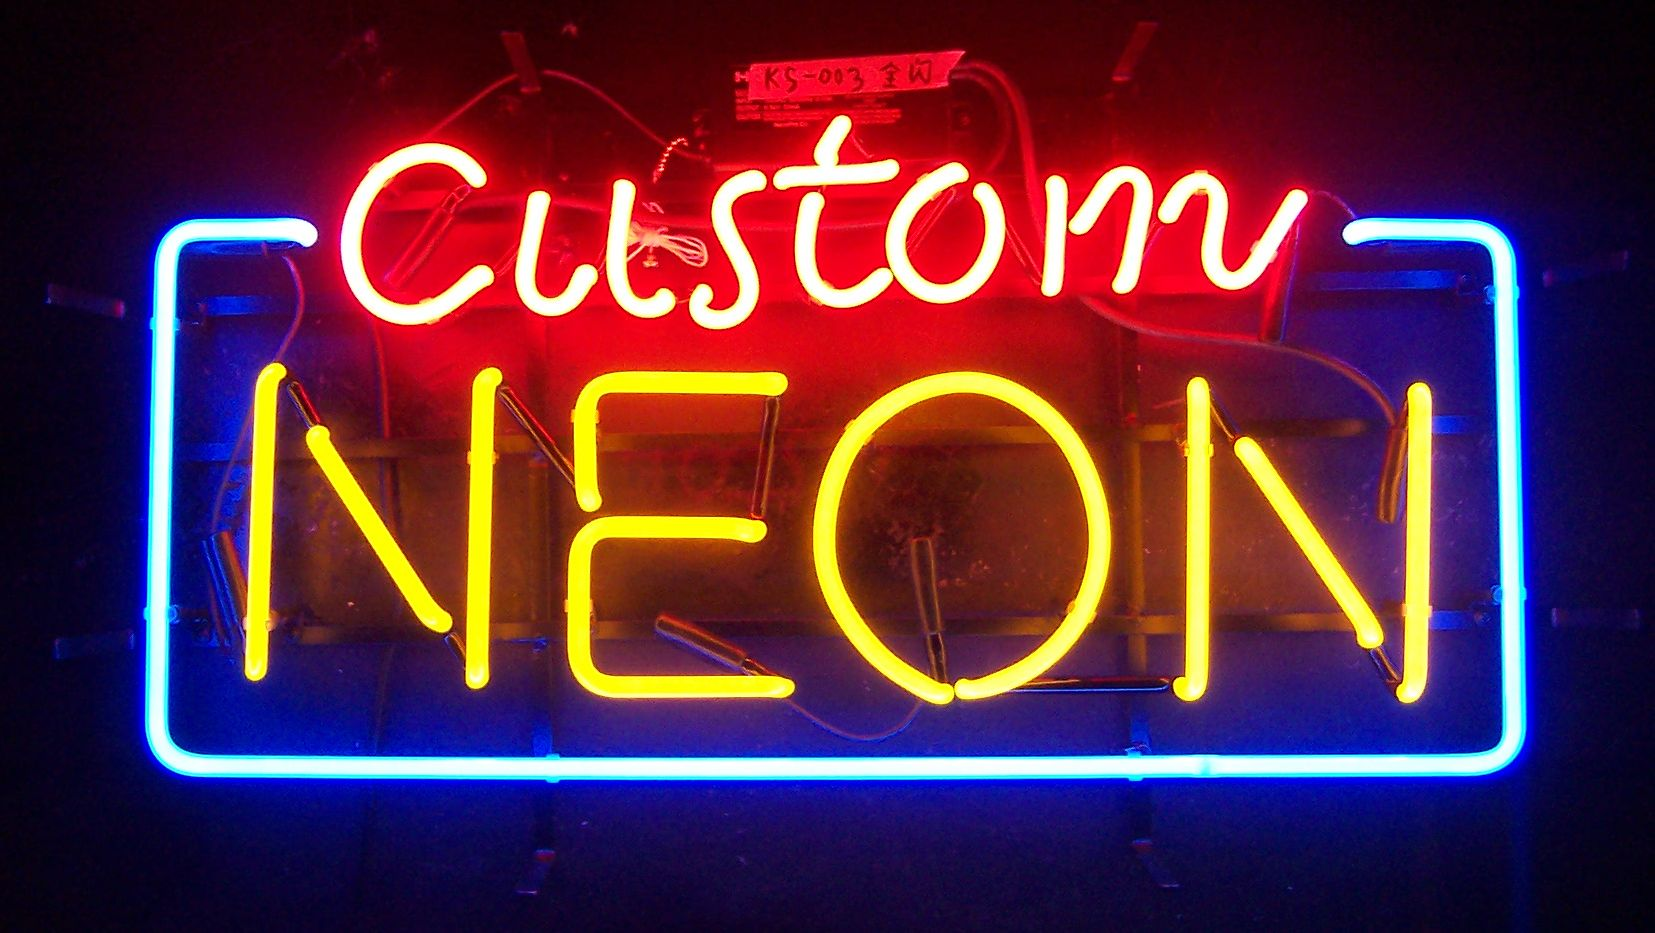 Custom Neon Sign u2013 Any Size Any Shape | dottheistudio.com - printing advertising gadgets website  sc 1 st  dottheistudio.com & Custom Neon Sign u2013 Any Size Any Shape | dottheistudio.com ... azcodes.com